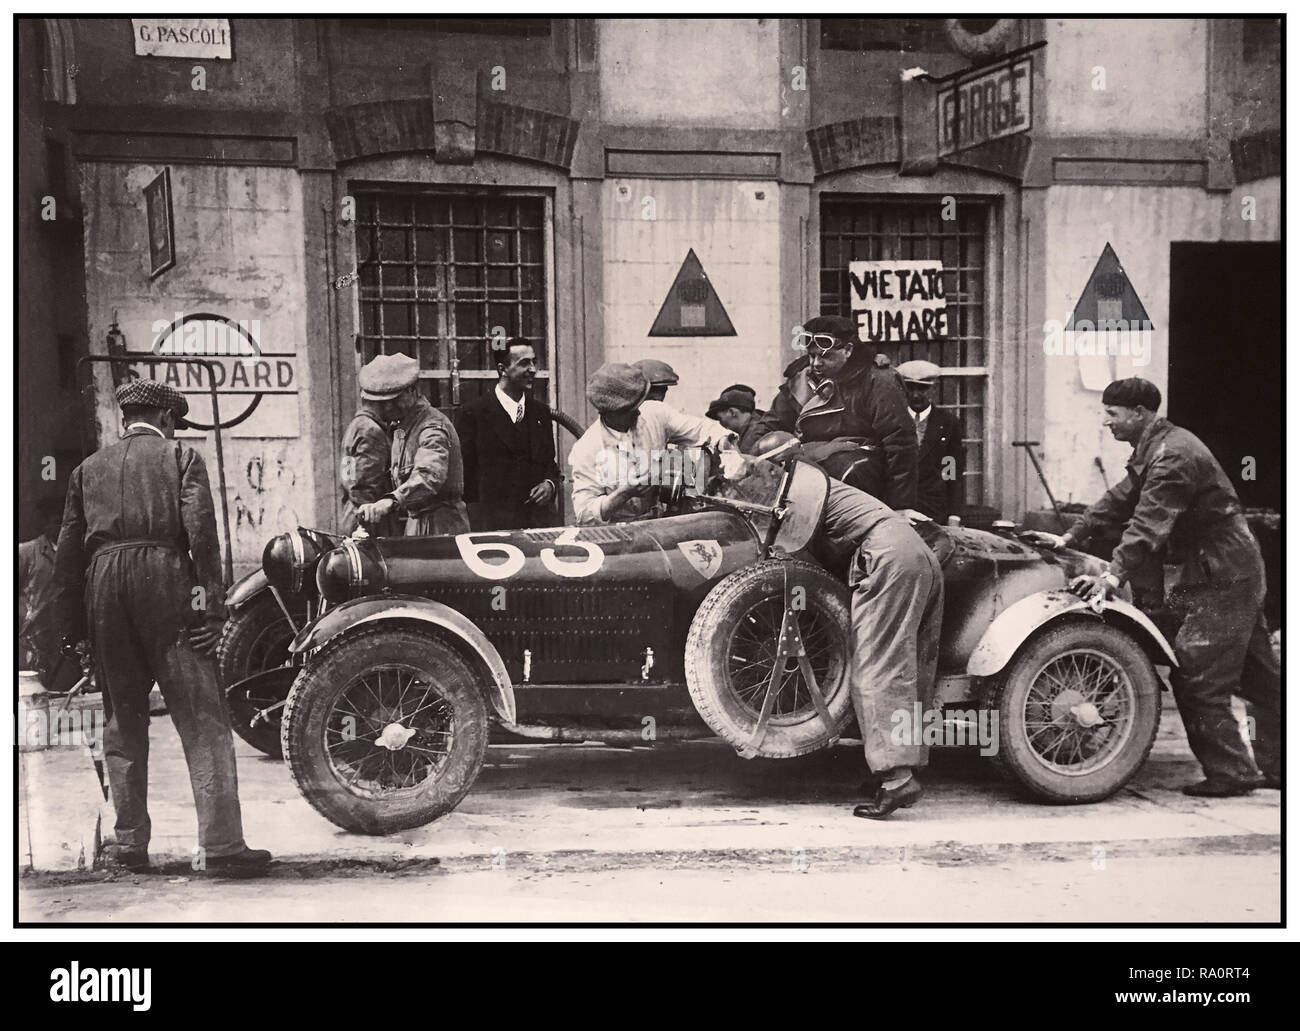 Vintage 1932 Mille Miglia Italian road race, a brief pit stop for Number 63 Alfa Romeo 6C 1500 SStf Spider Zagato entered by Scuderia Ferrari and finished the endurance race in 6th place. The Mille Miglia (1000 Miglia) was an open-road, motorsport endurance race which took place in Italy twenty-four times from 1927 to 1957. - Stock Image